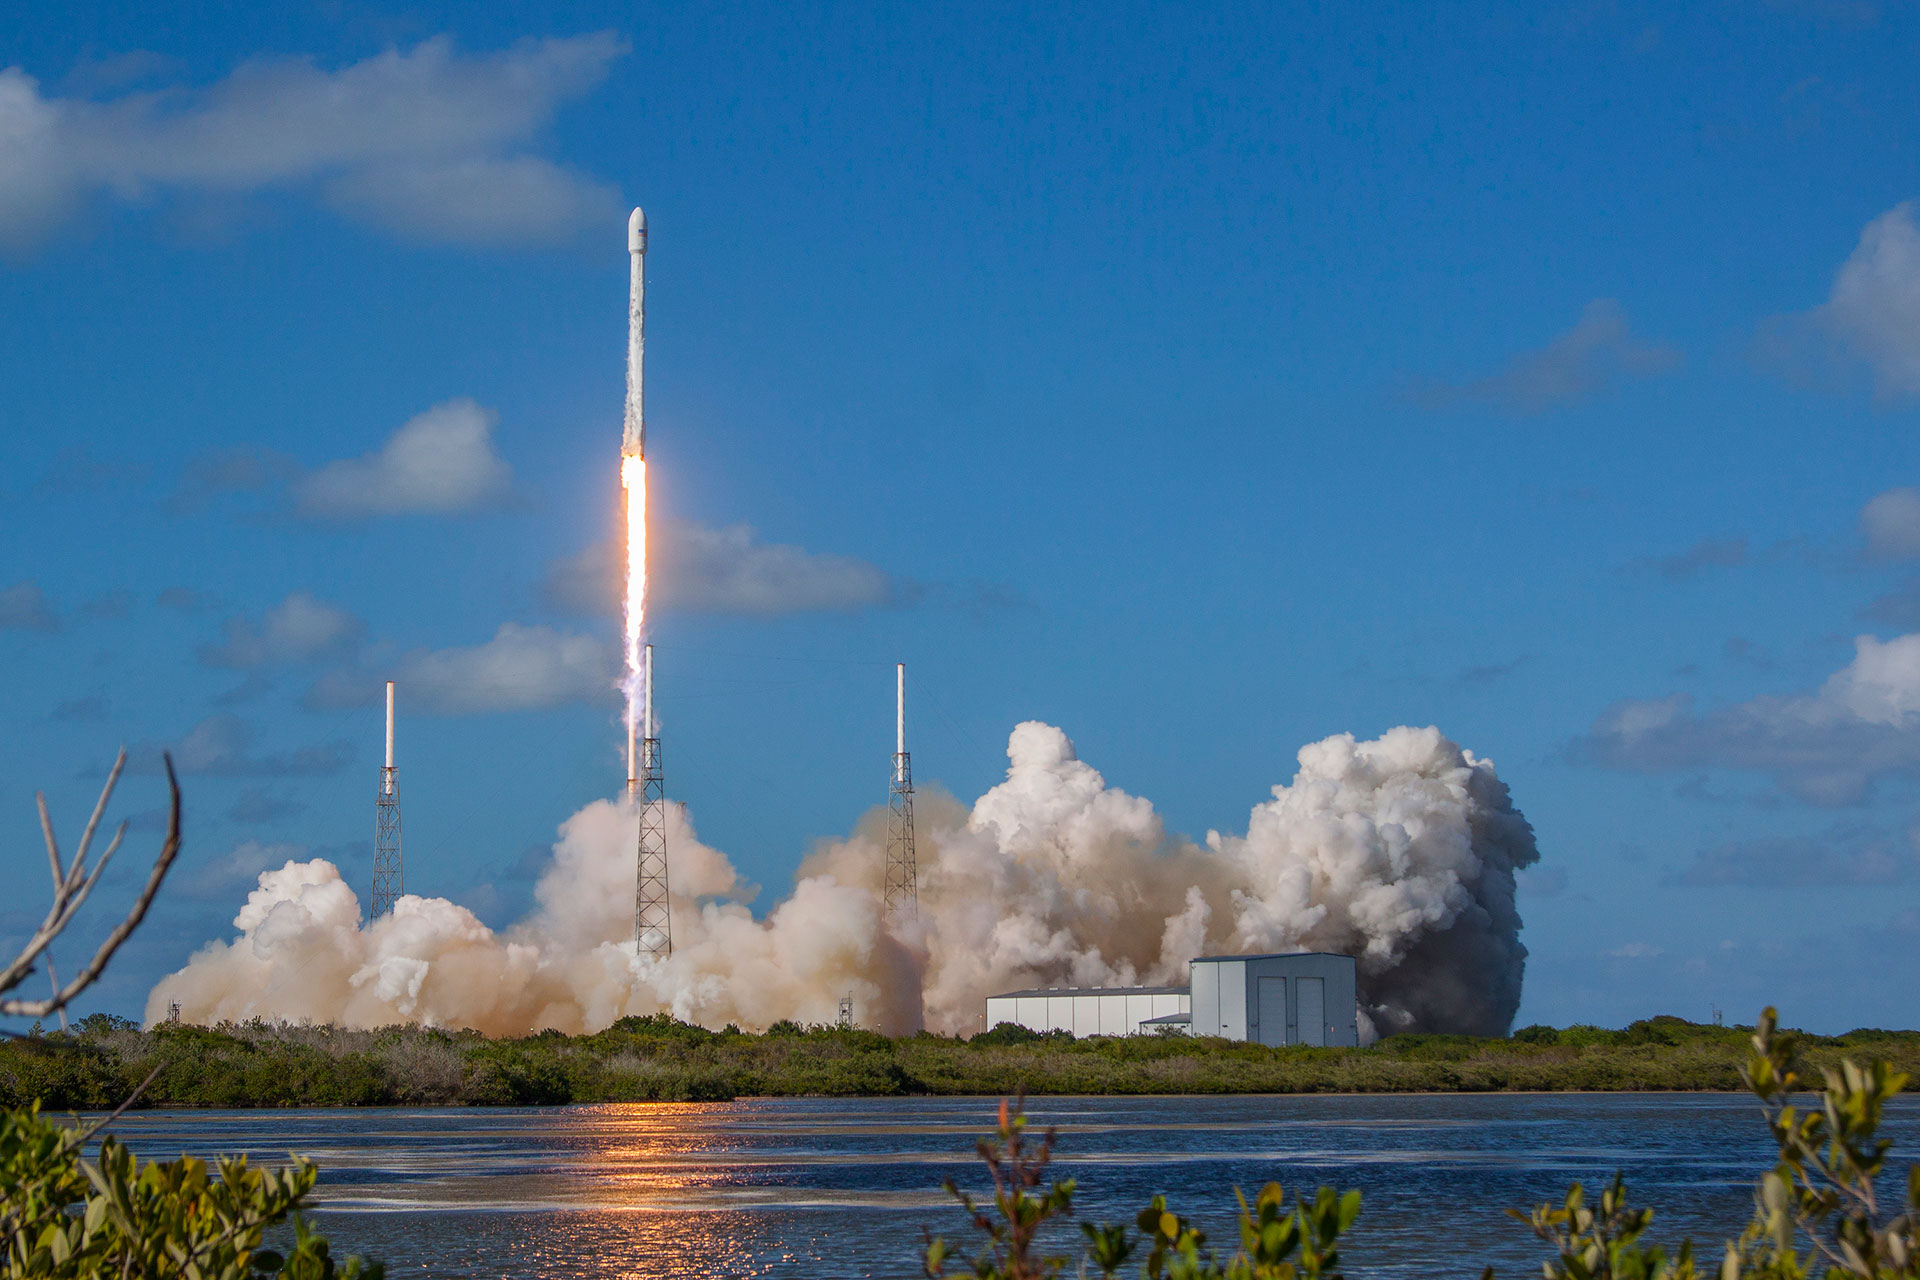 SpaceX Thaicom 8 rocket launch